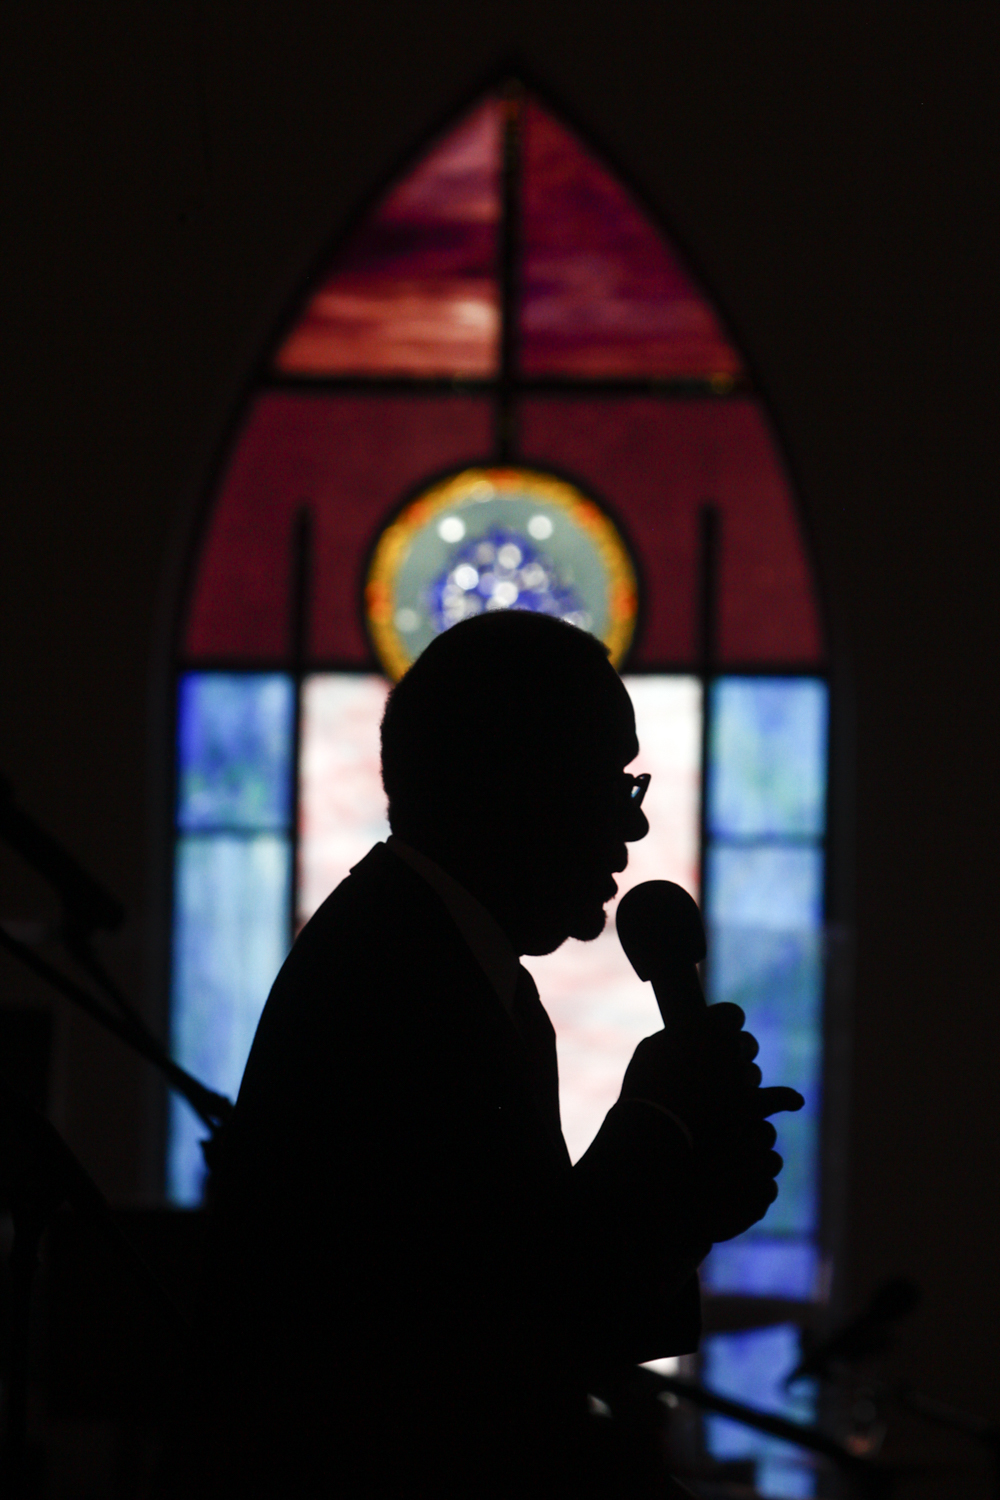 A Sunday service at Mount Zion First African Baptist Church in Charlottesville, Va., on Sunday, August 13, 2017. [Scott P. Yates for The Wall Street Journal]